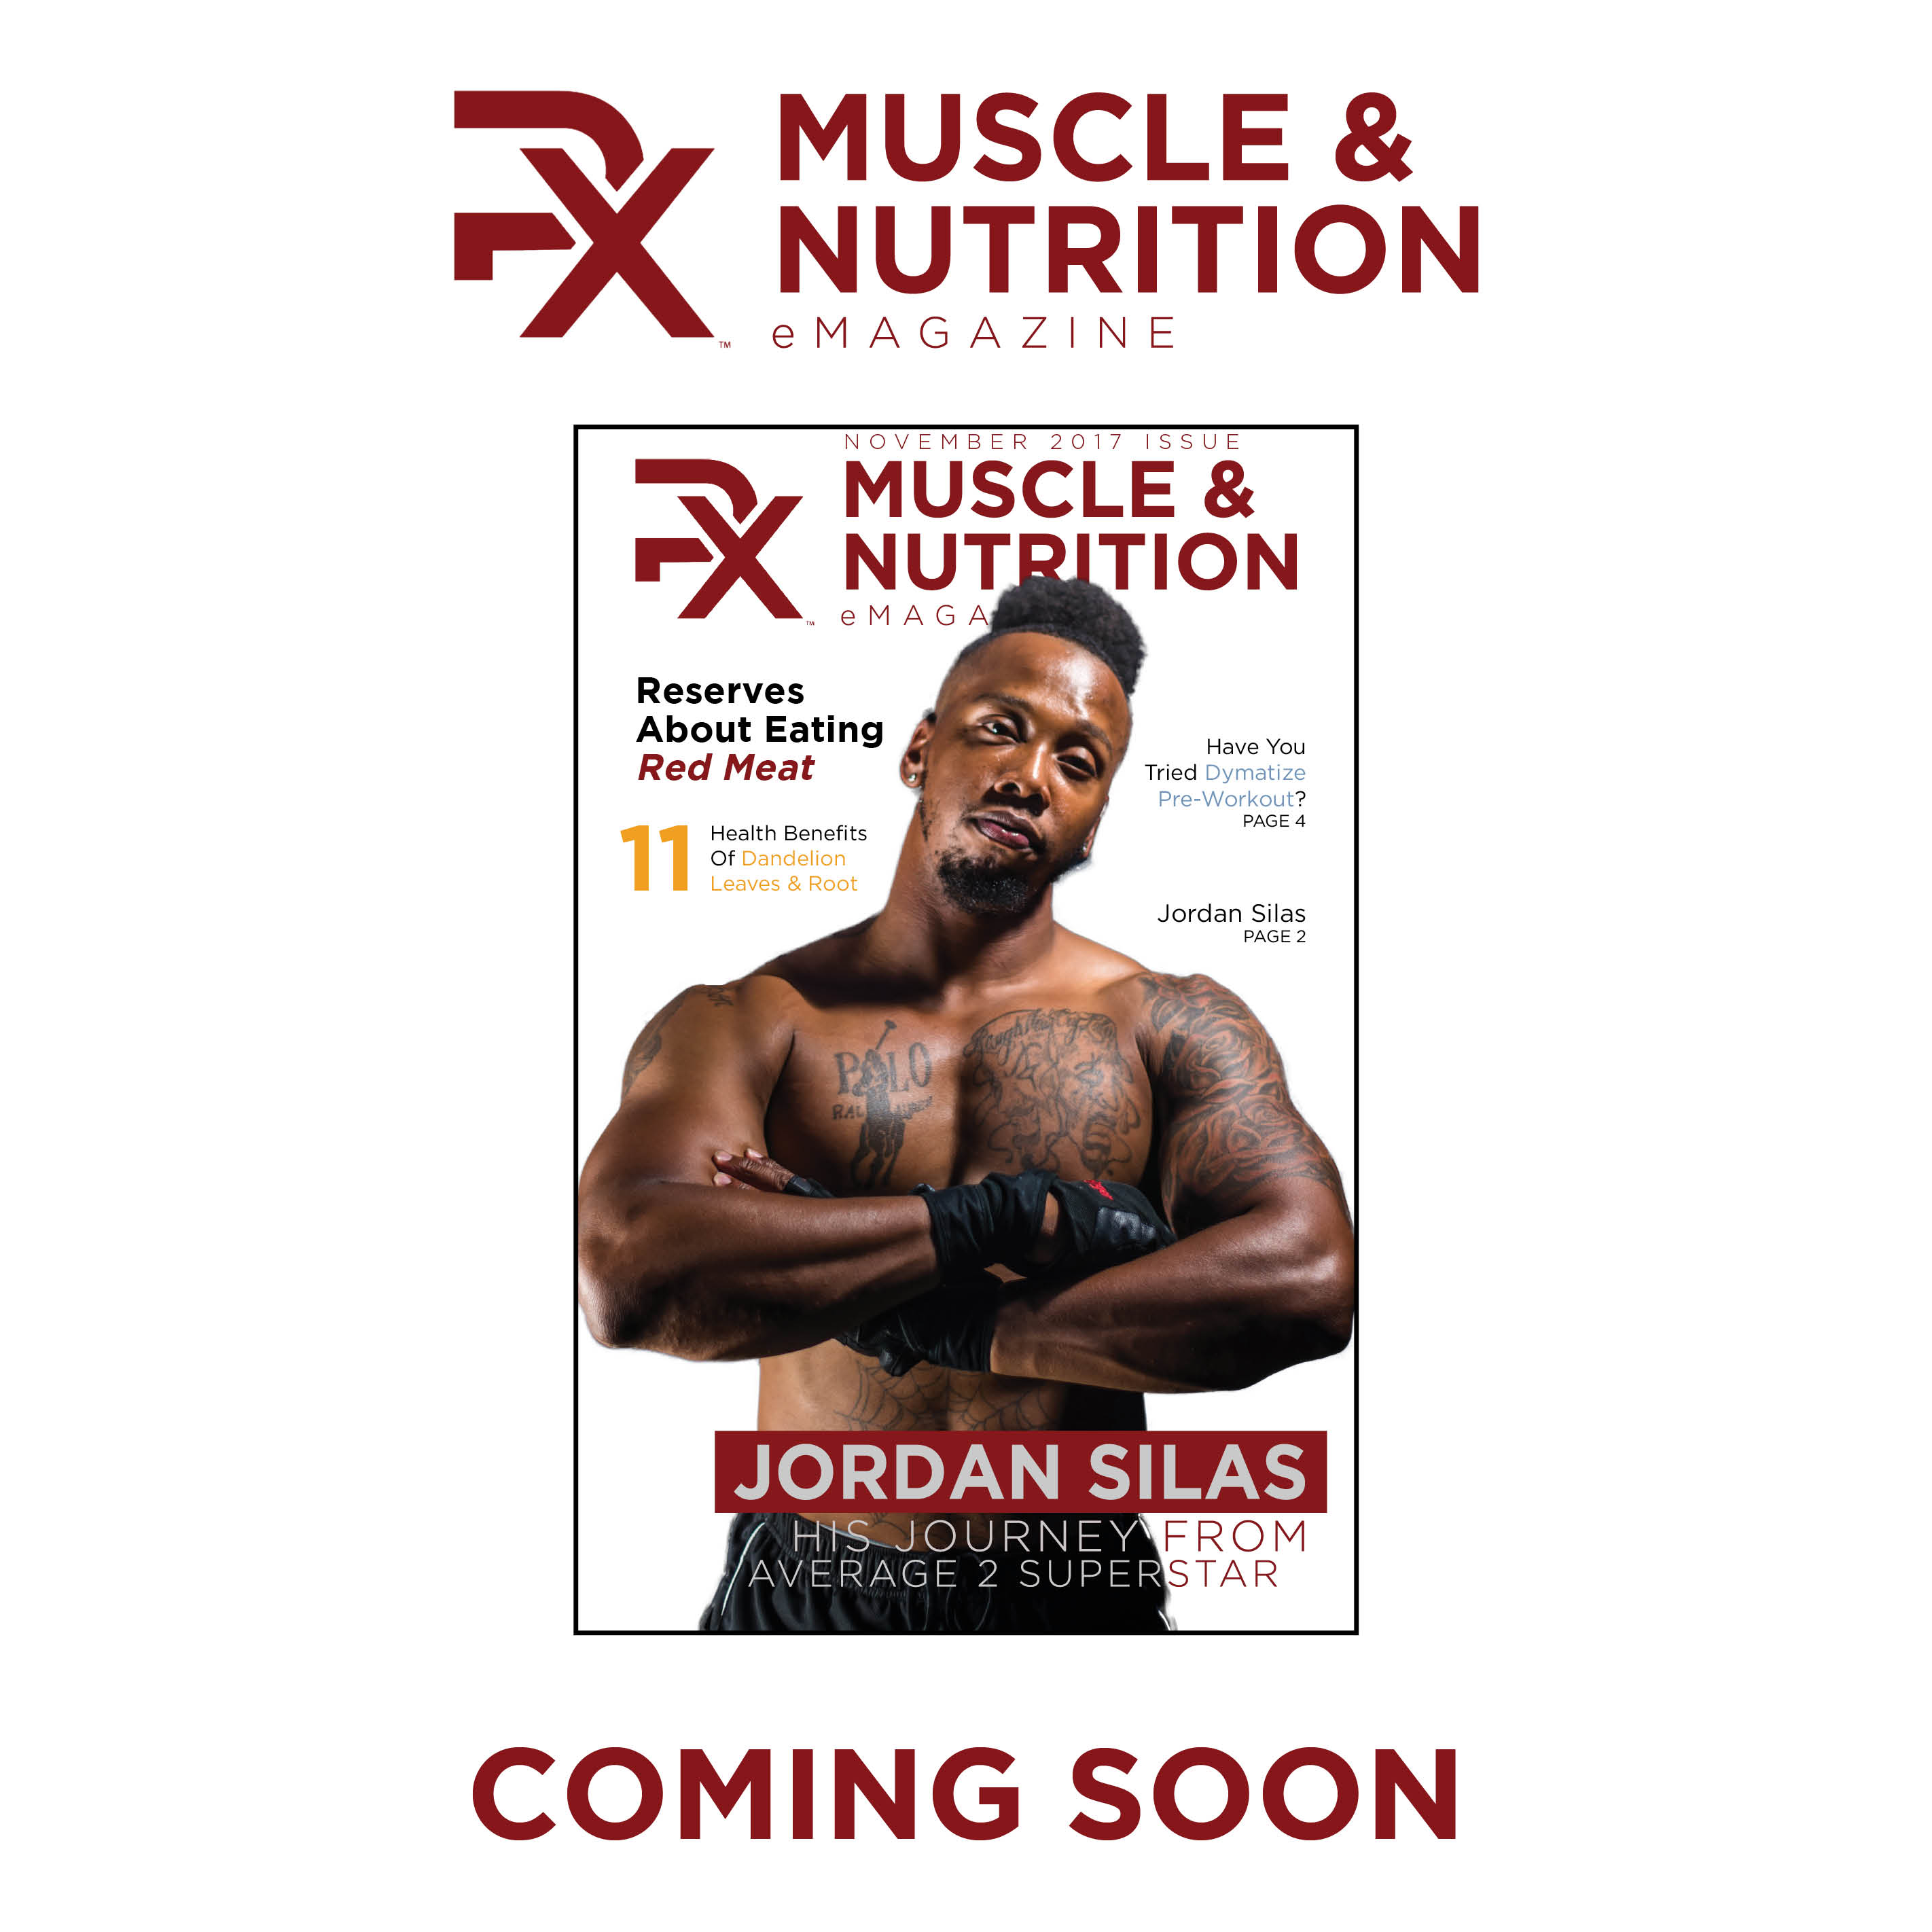 PX Muscle and Nutrition